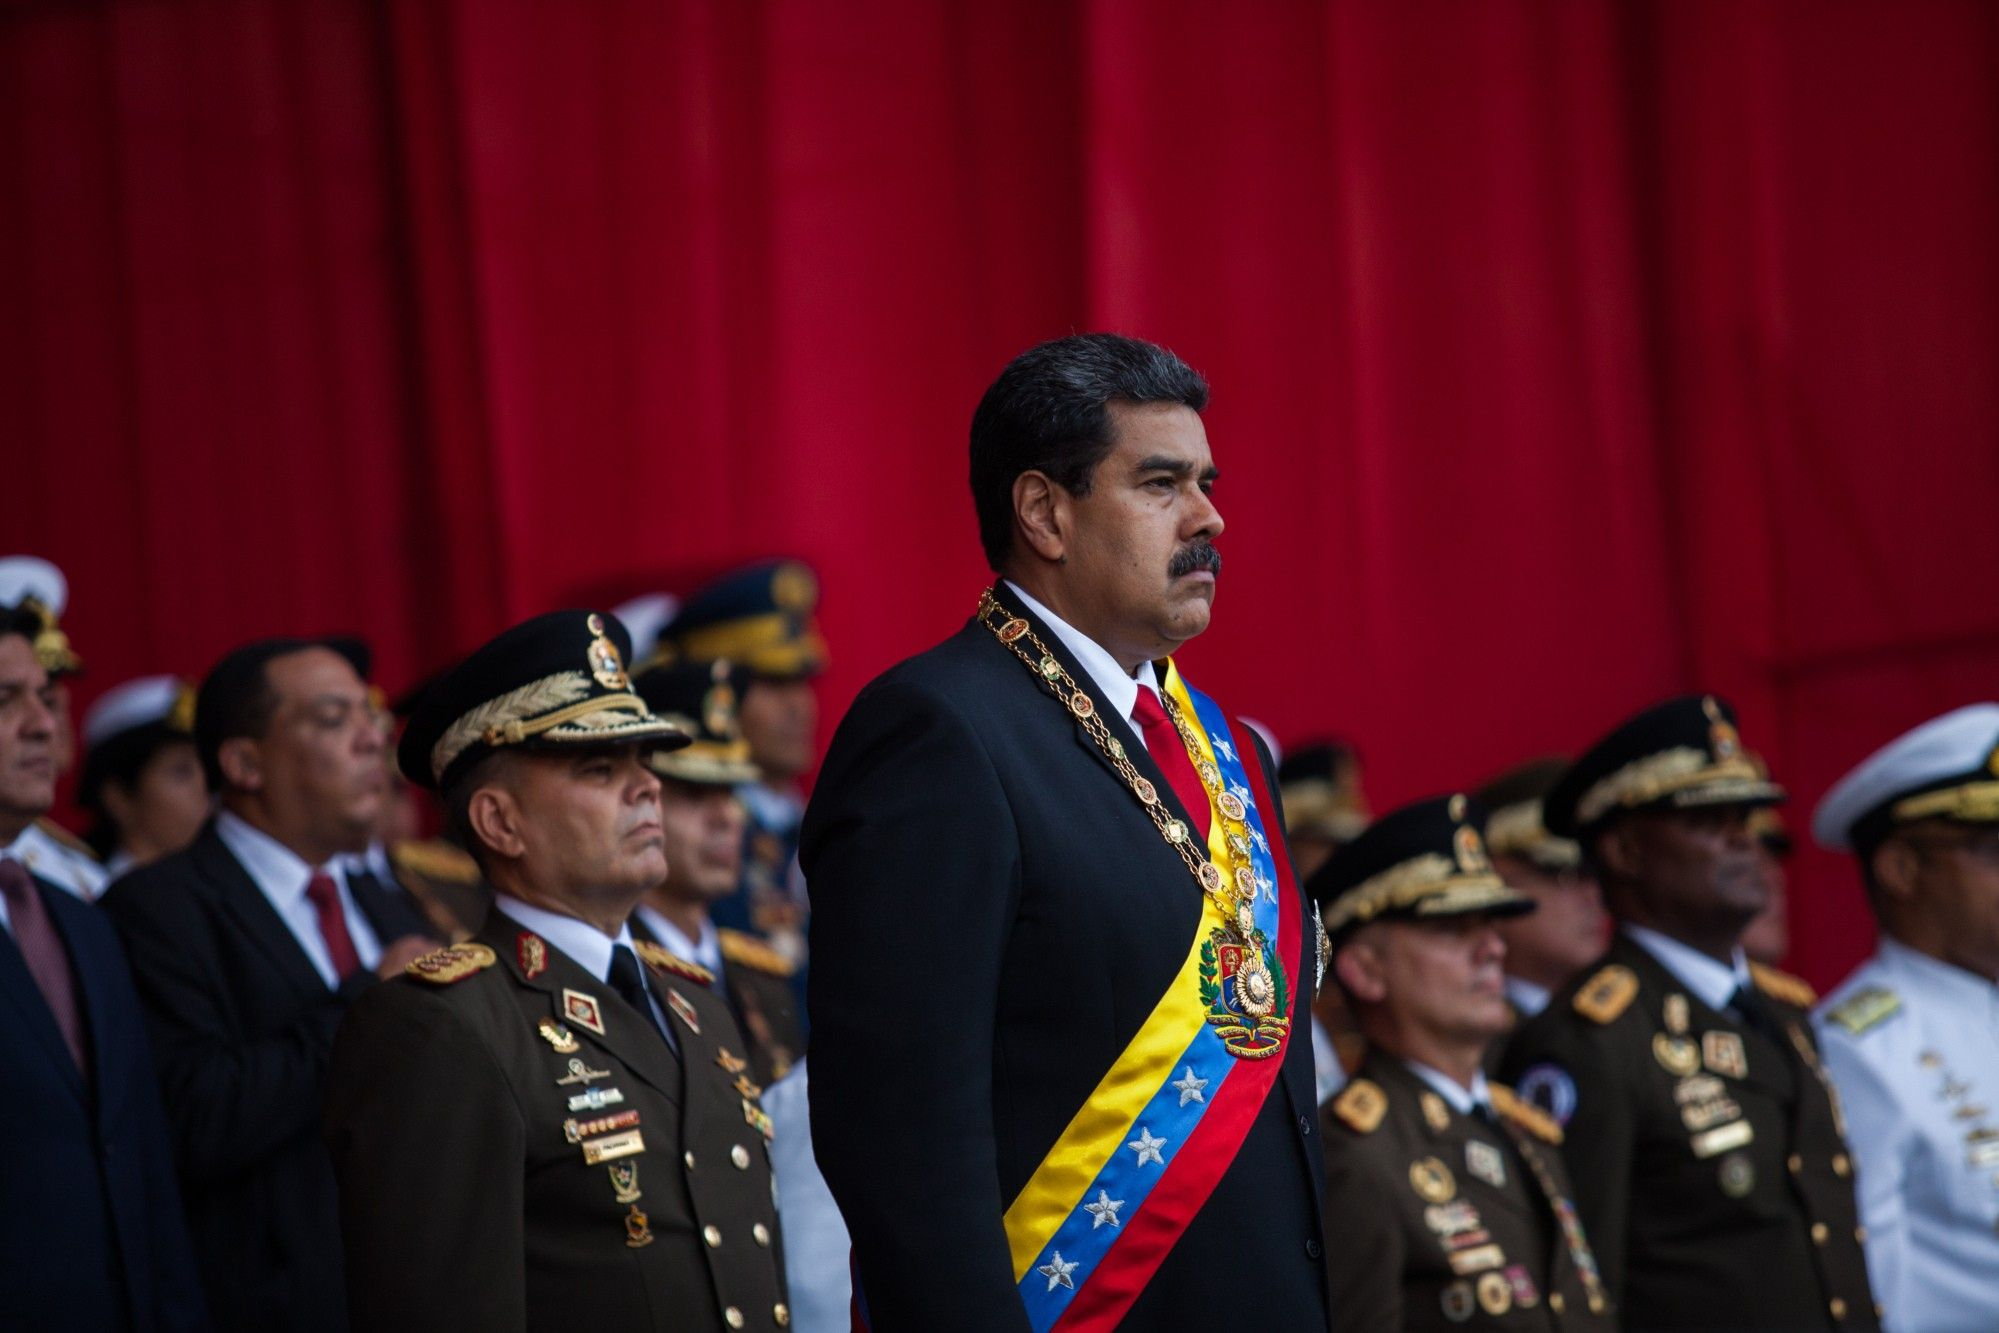 President Maduro Attends The Military Academy ''Vow Of Loyalty' Event